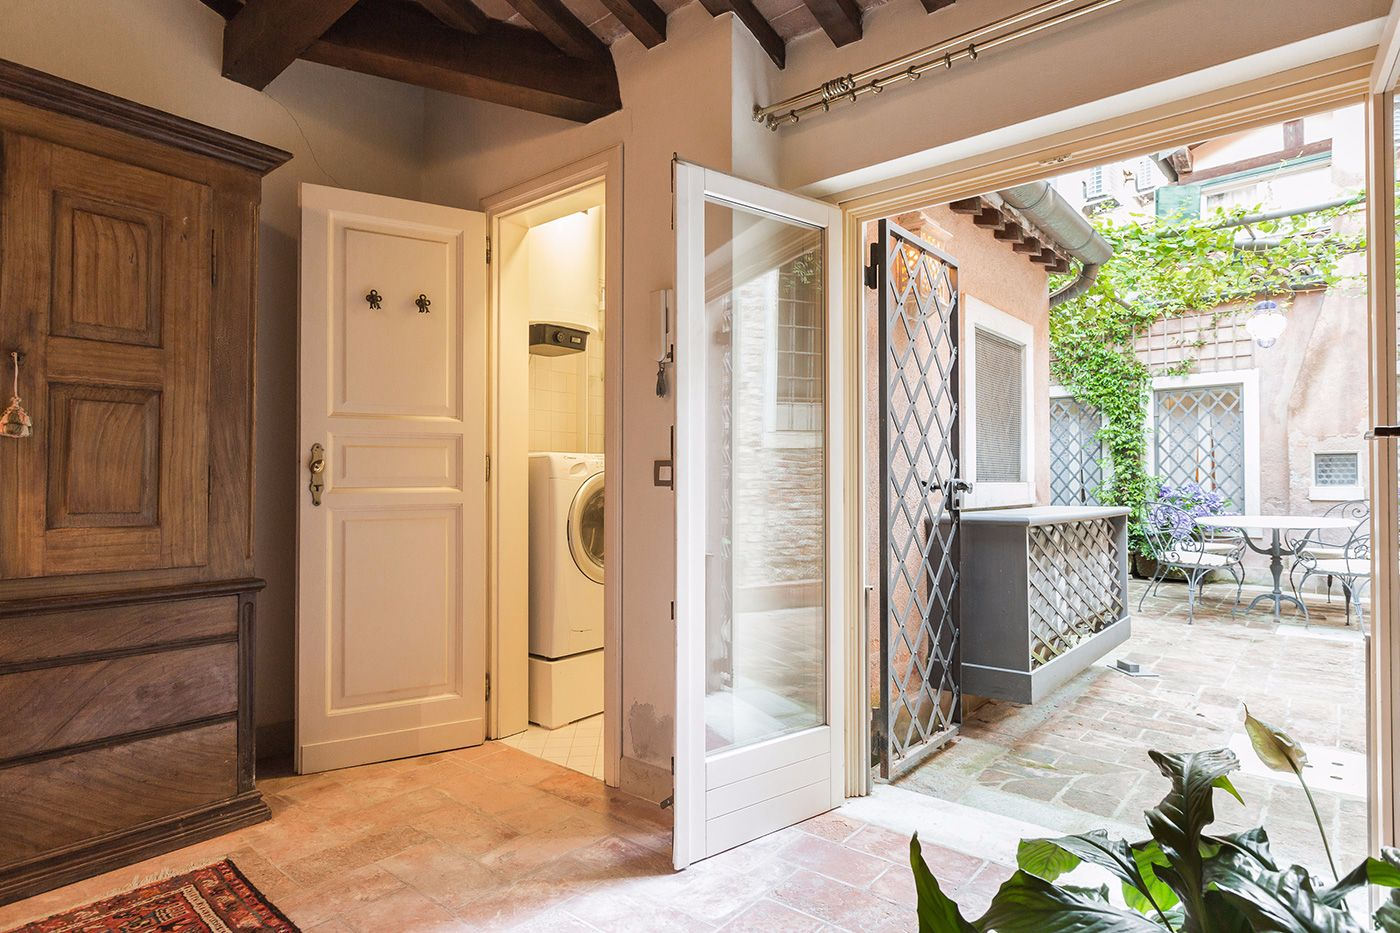 the Dependance has direct access to the courtyard and to the en-suite bathroom